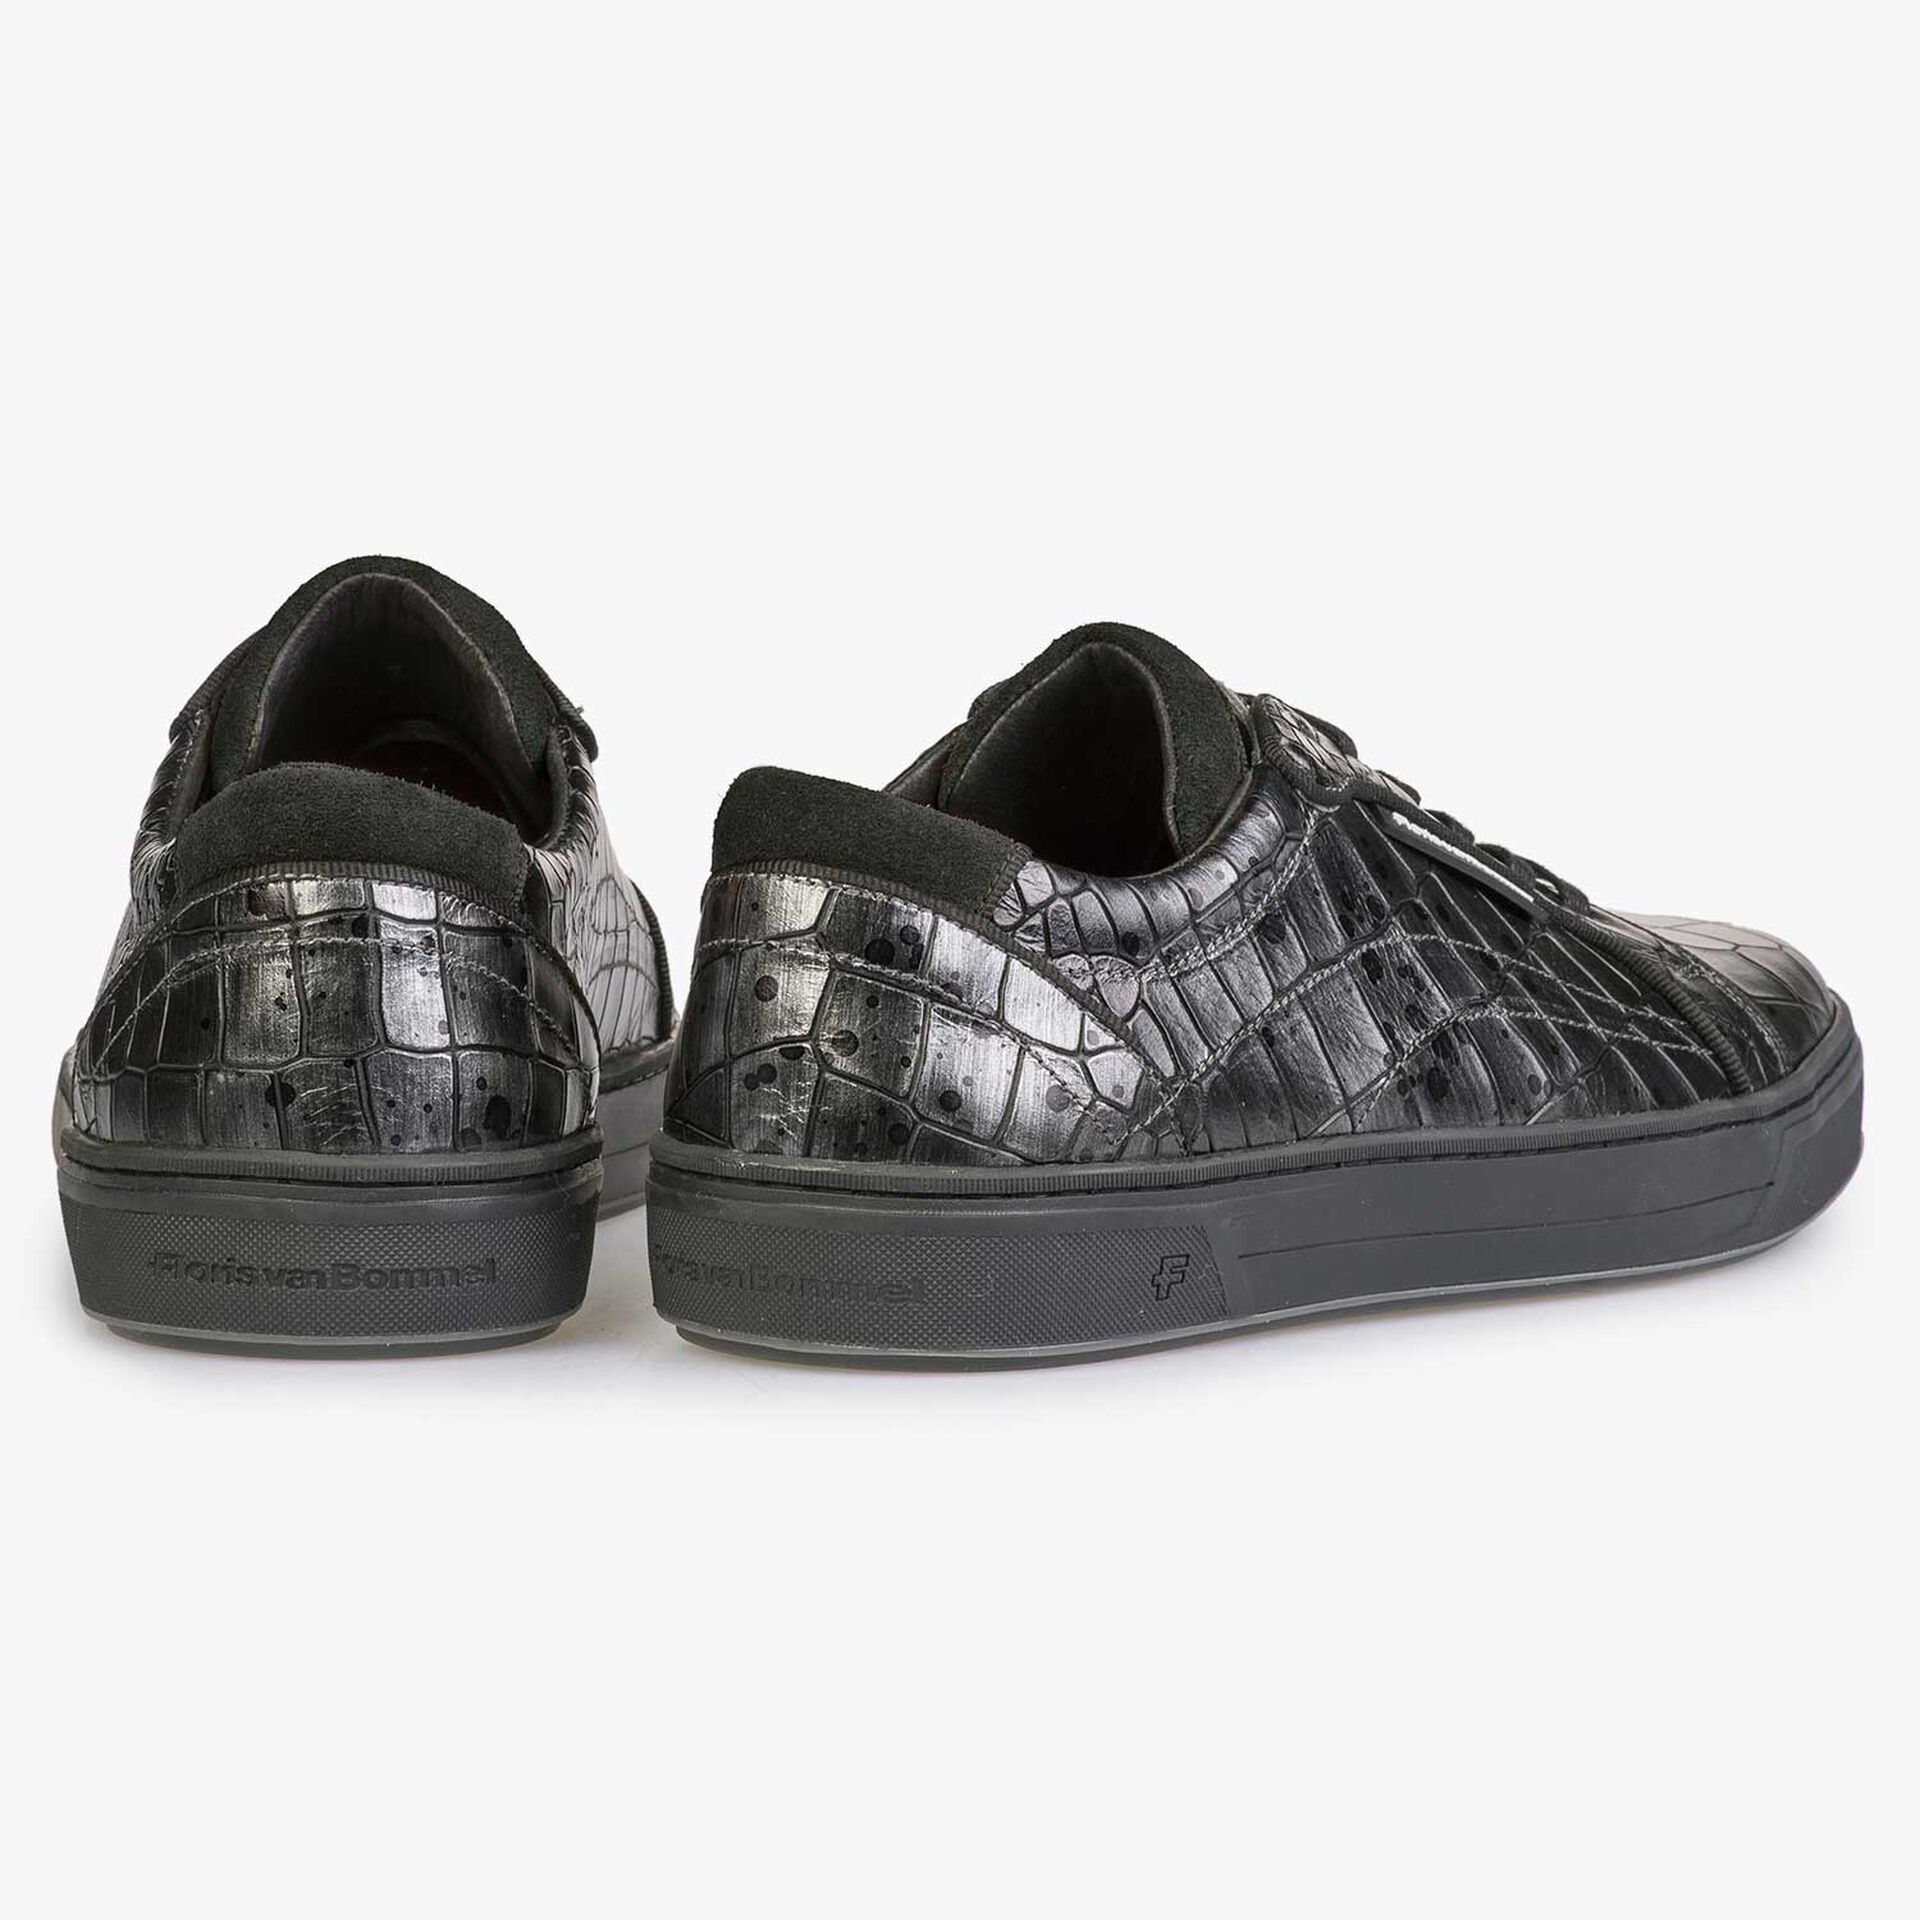 Leather sneaker with croco print